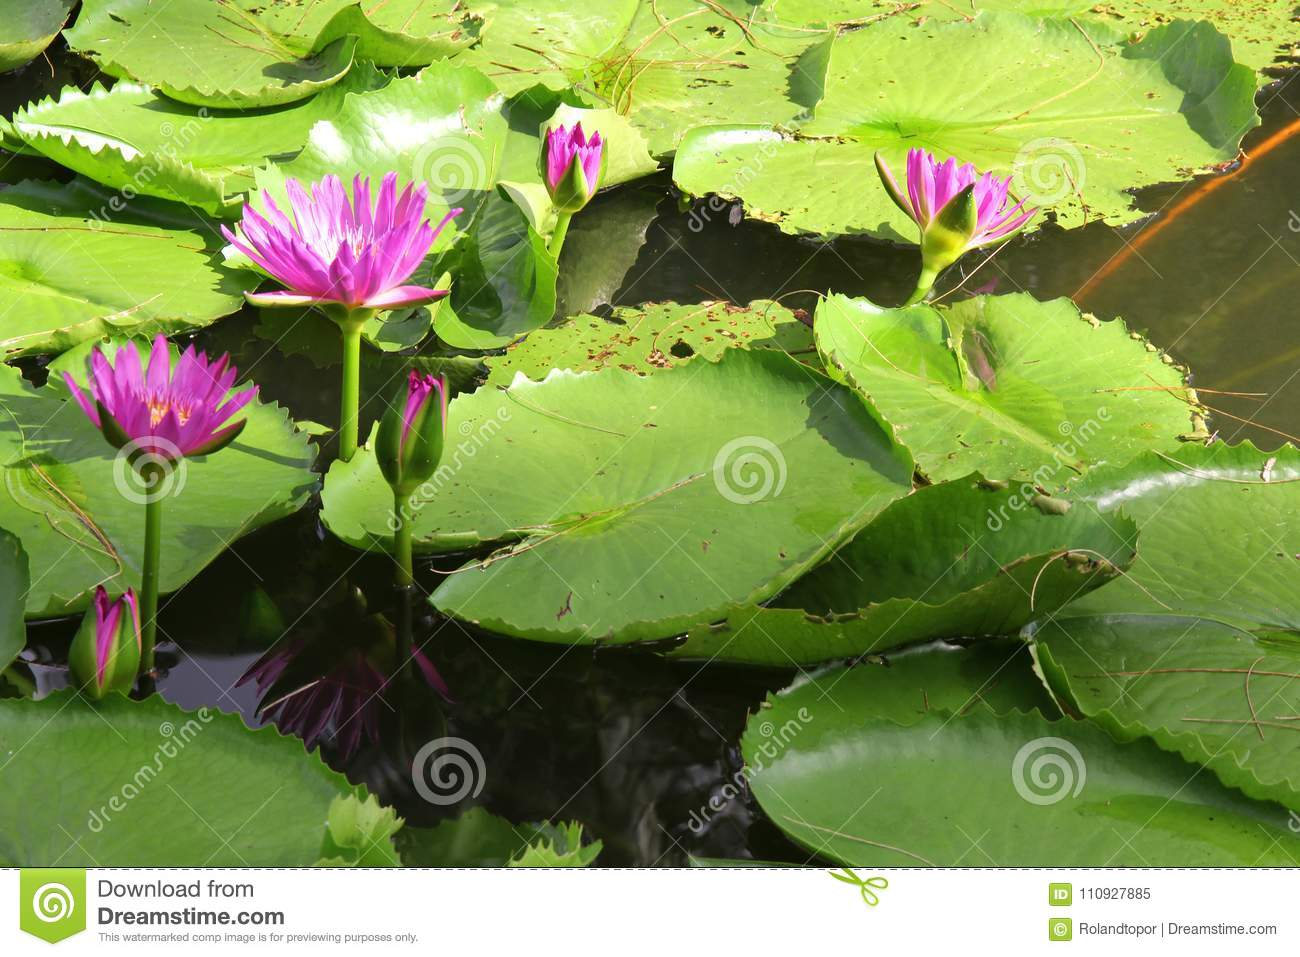 Natural water lily flowers color picture and image stock image download natural water lily flowers color picture and image stock image image of izmirmasajfo